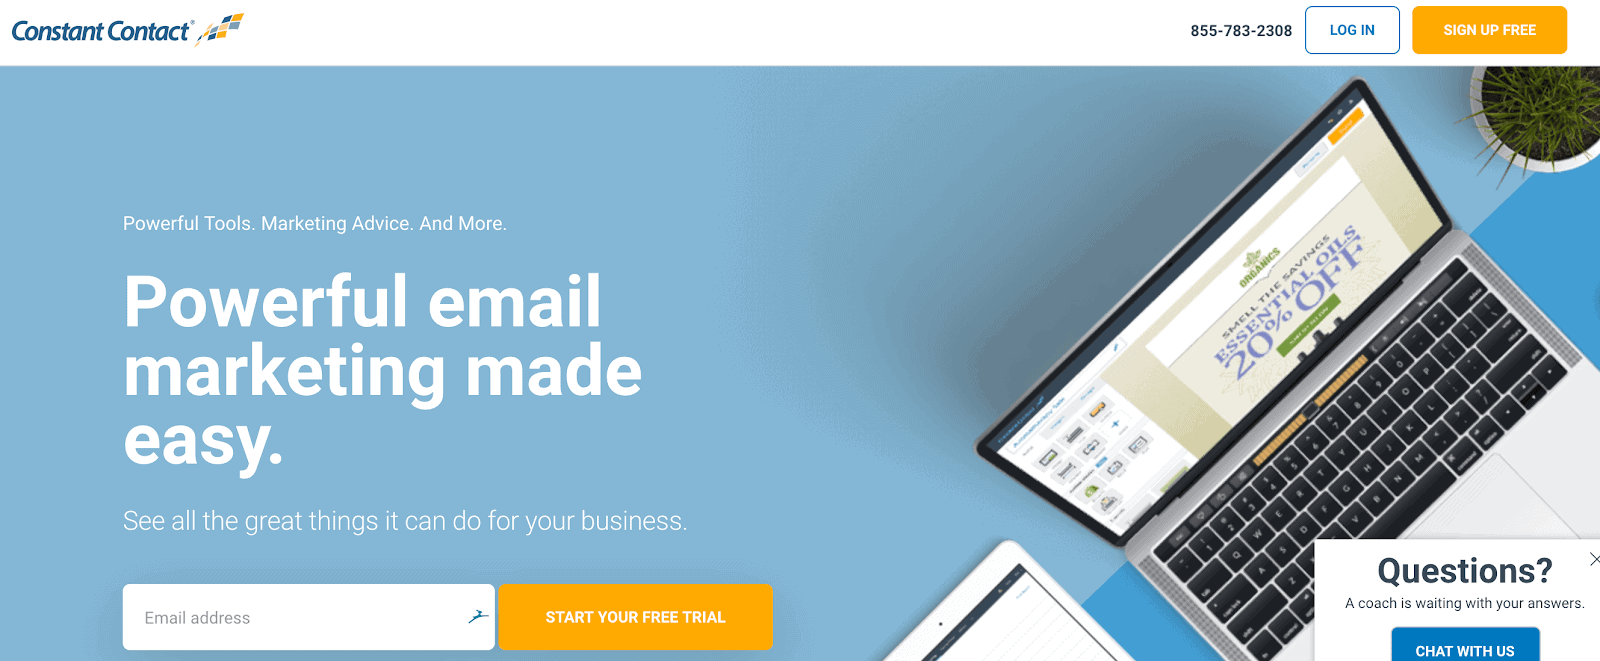 Constant Contact Email Service Provider